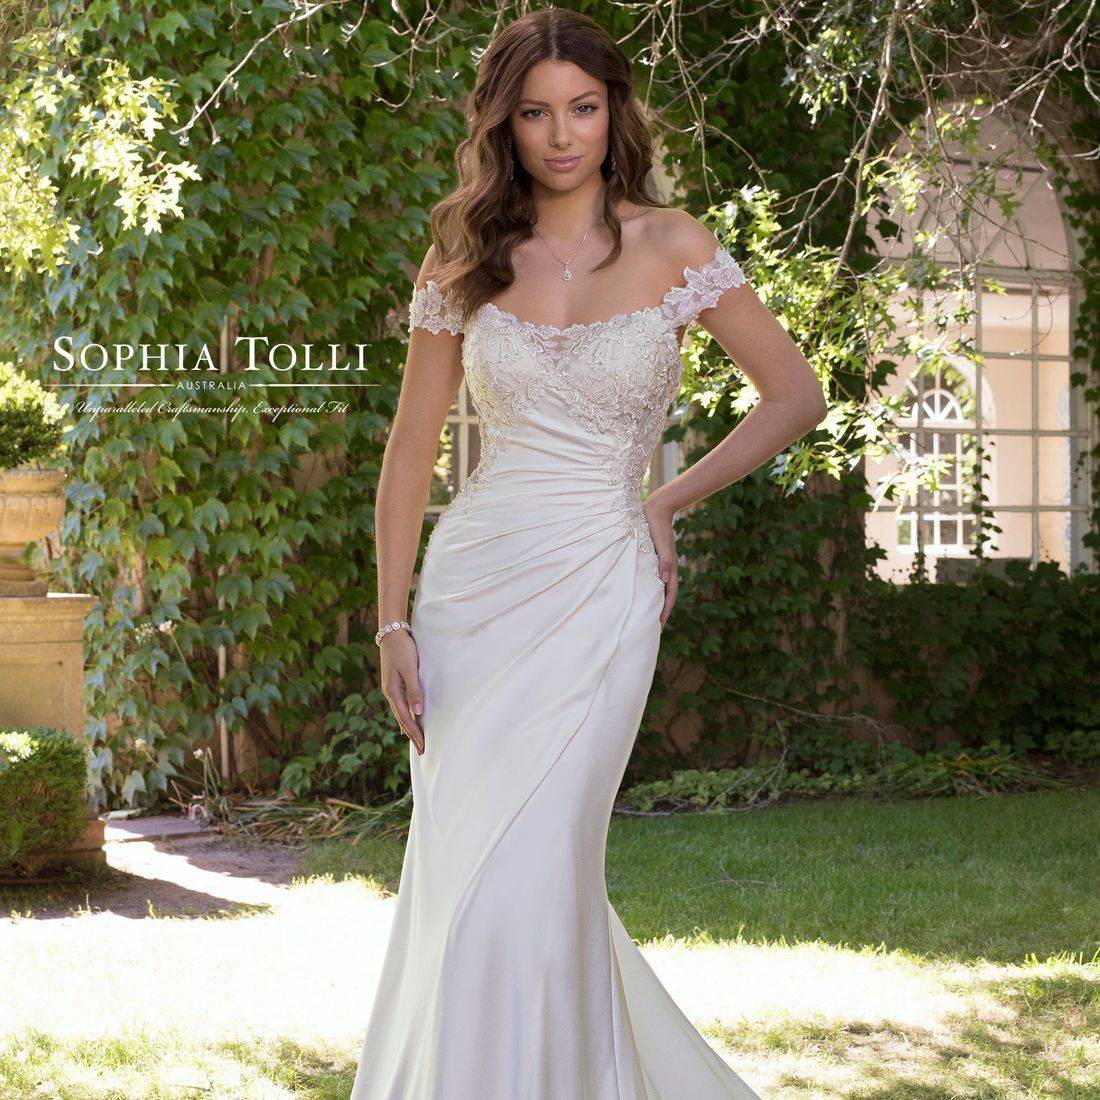 detachable straps, lace up back, corset back, crepe, satin, cut out hem, chapel length train, comfortable, stunning, unique, wedding dress, strapless, ruched, fitted, fit and flare, straps